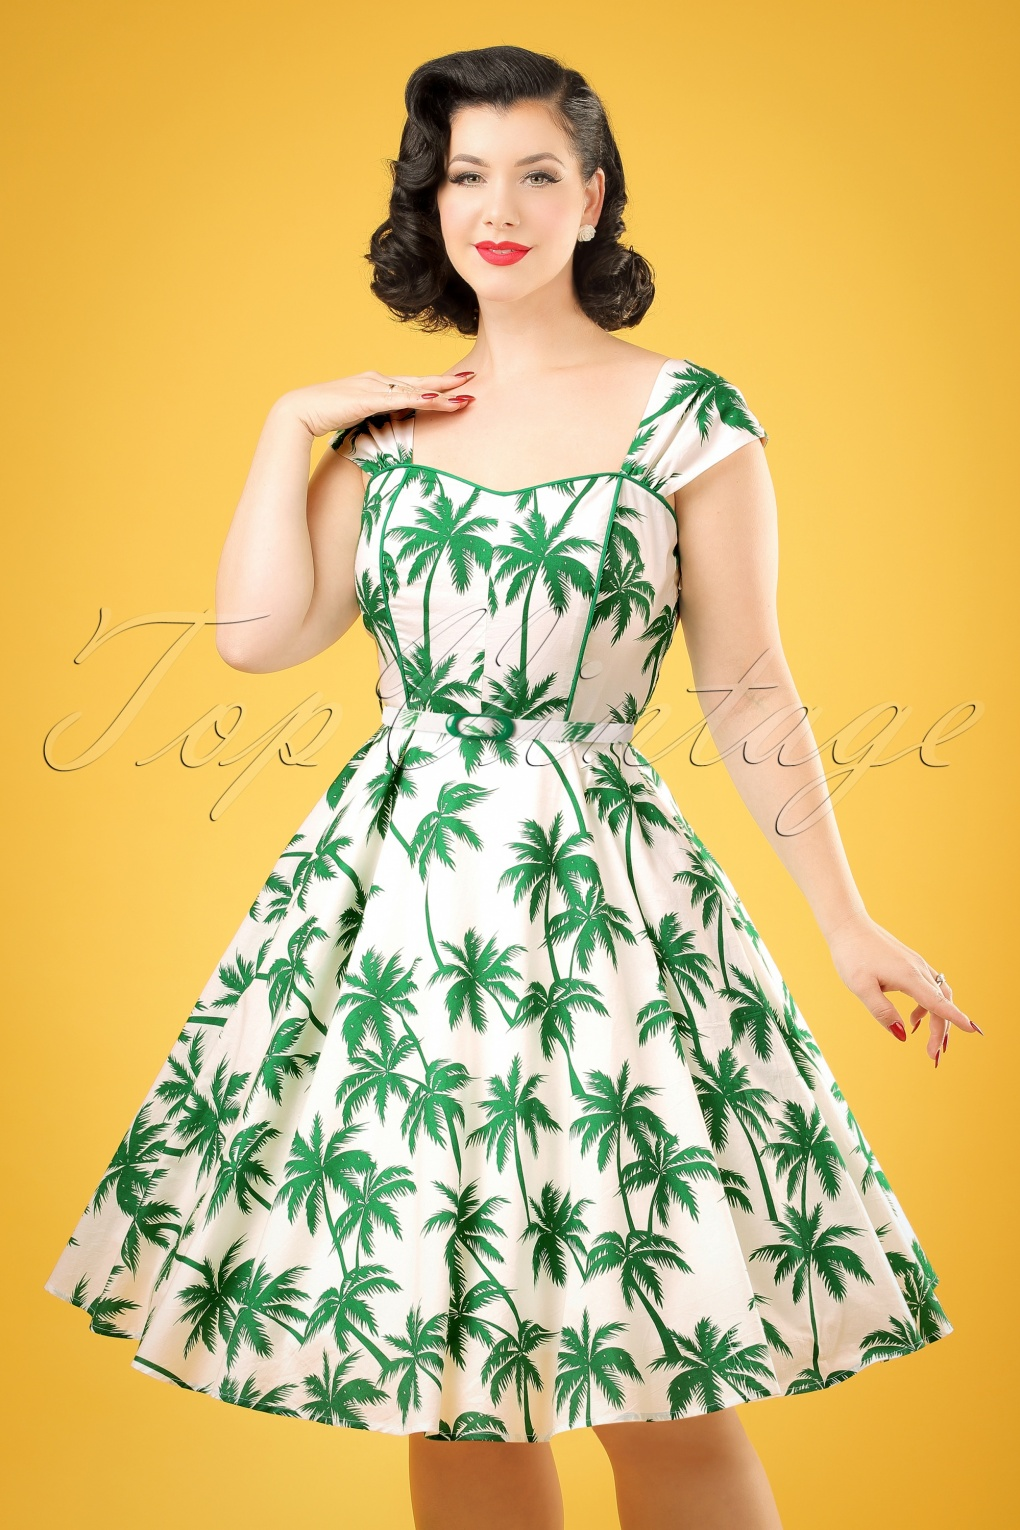 1940s Pinup Dresses for Sale 50s Sandra Palm Swing Dress in White and Green £61.53 AT vintagedancer.com